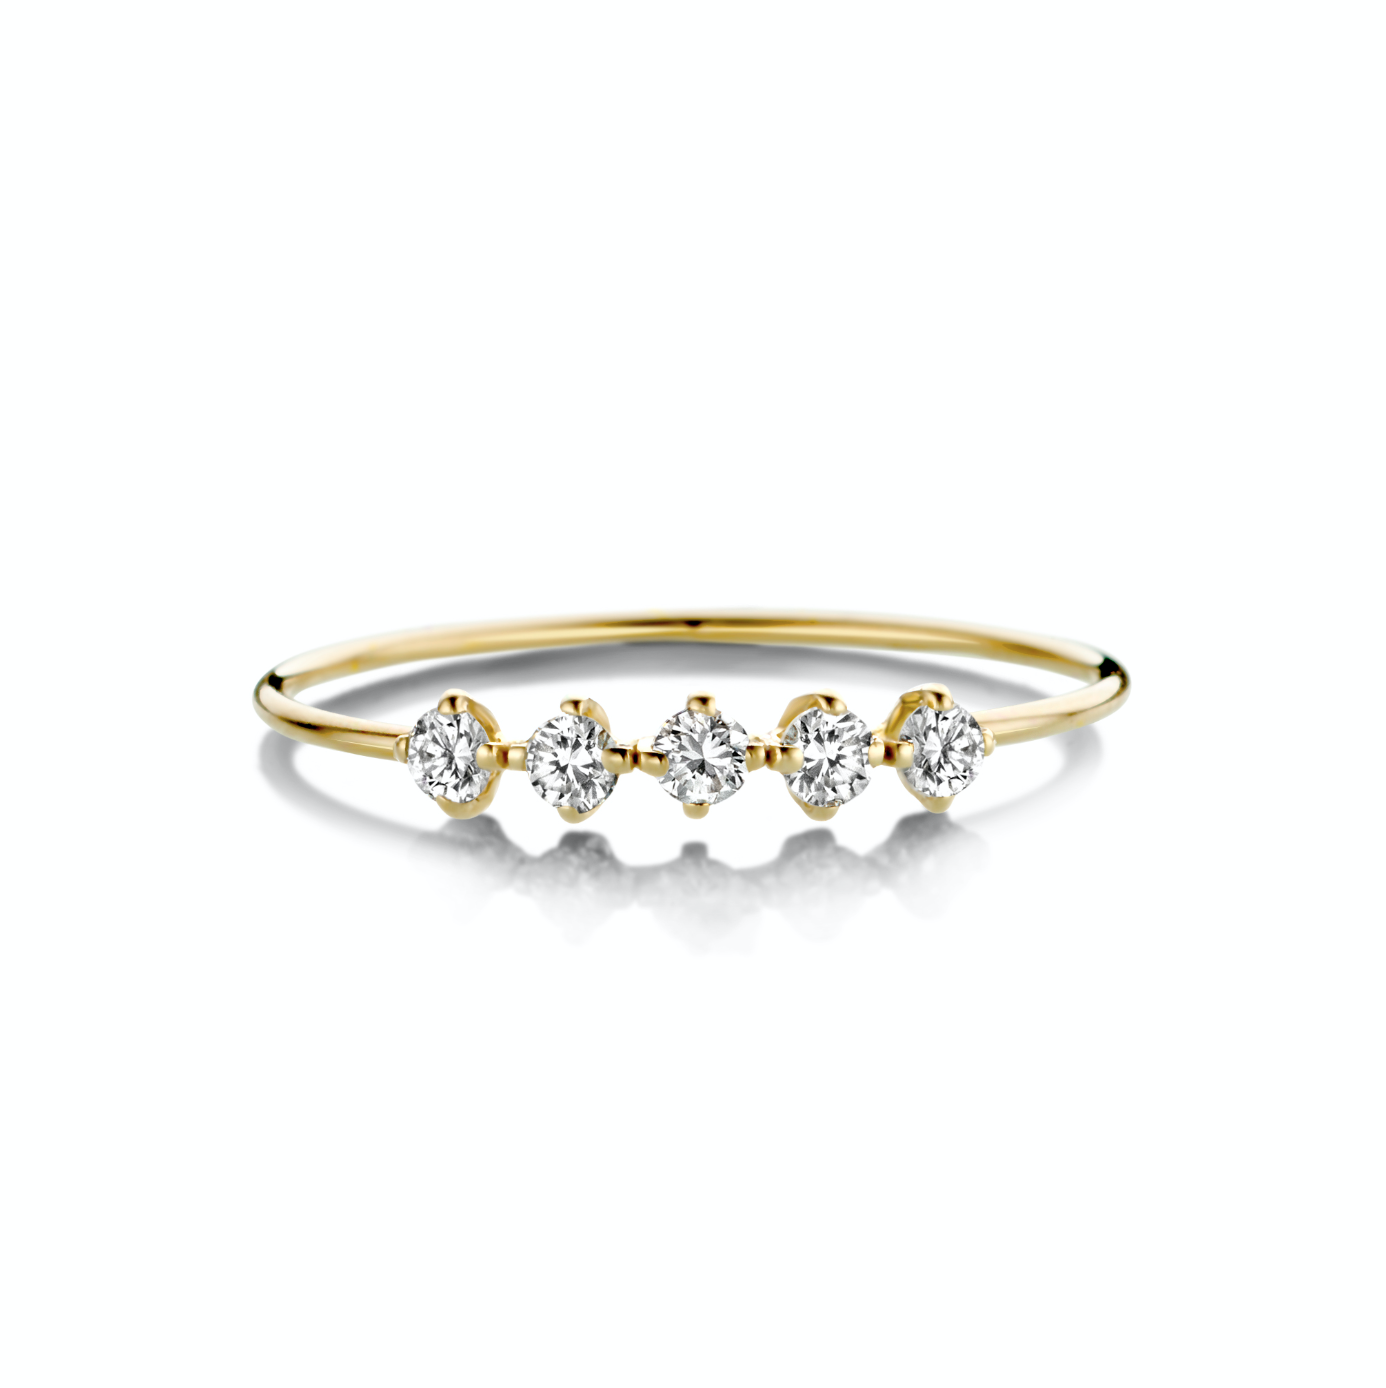 Solar Flare Ring by N-UE Fine Jewellery on curated-crowd.com